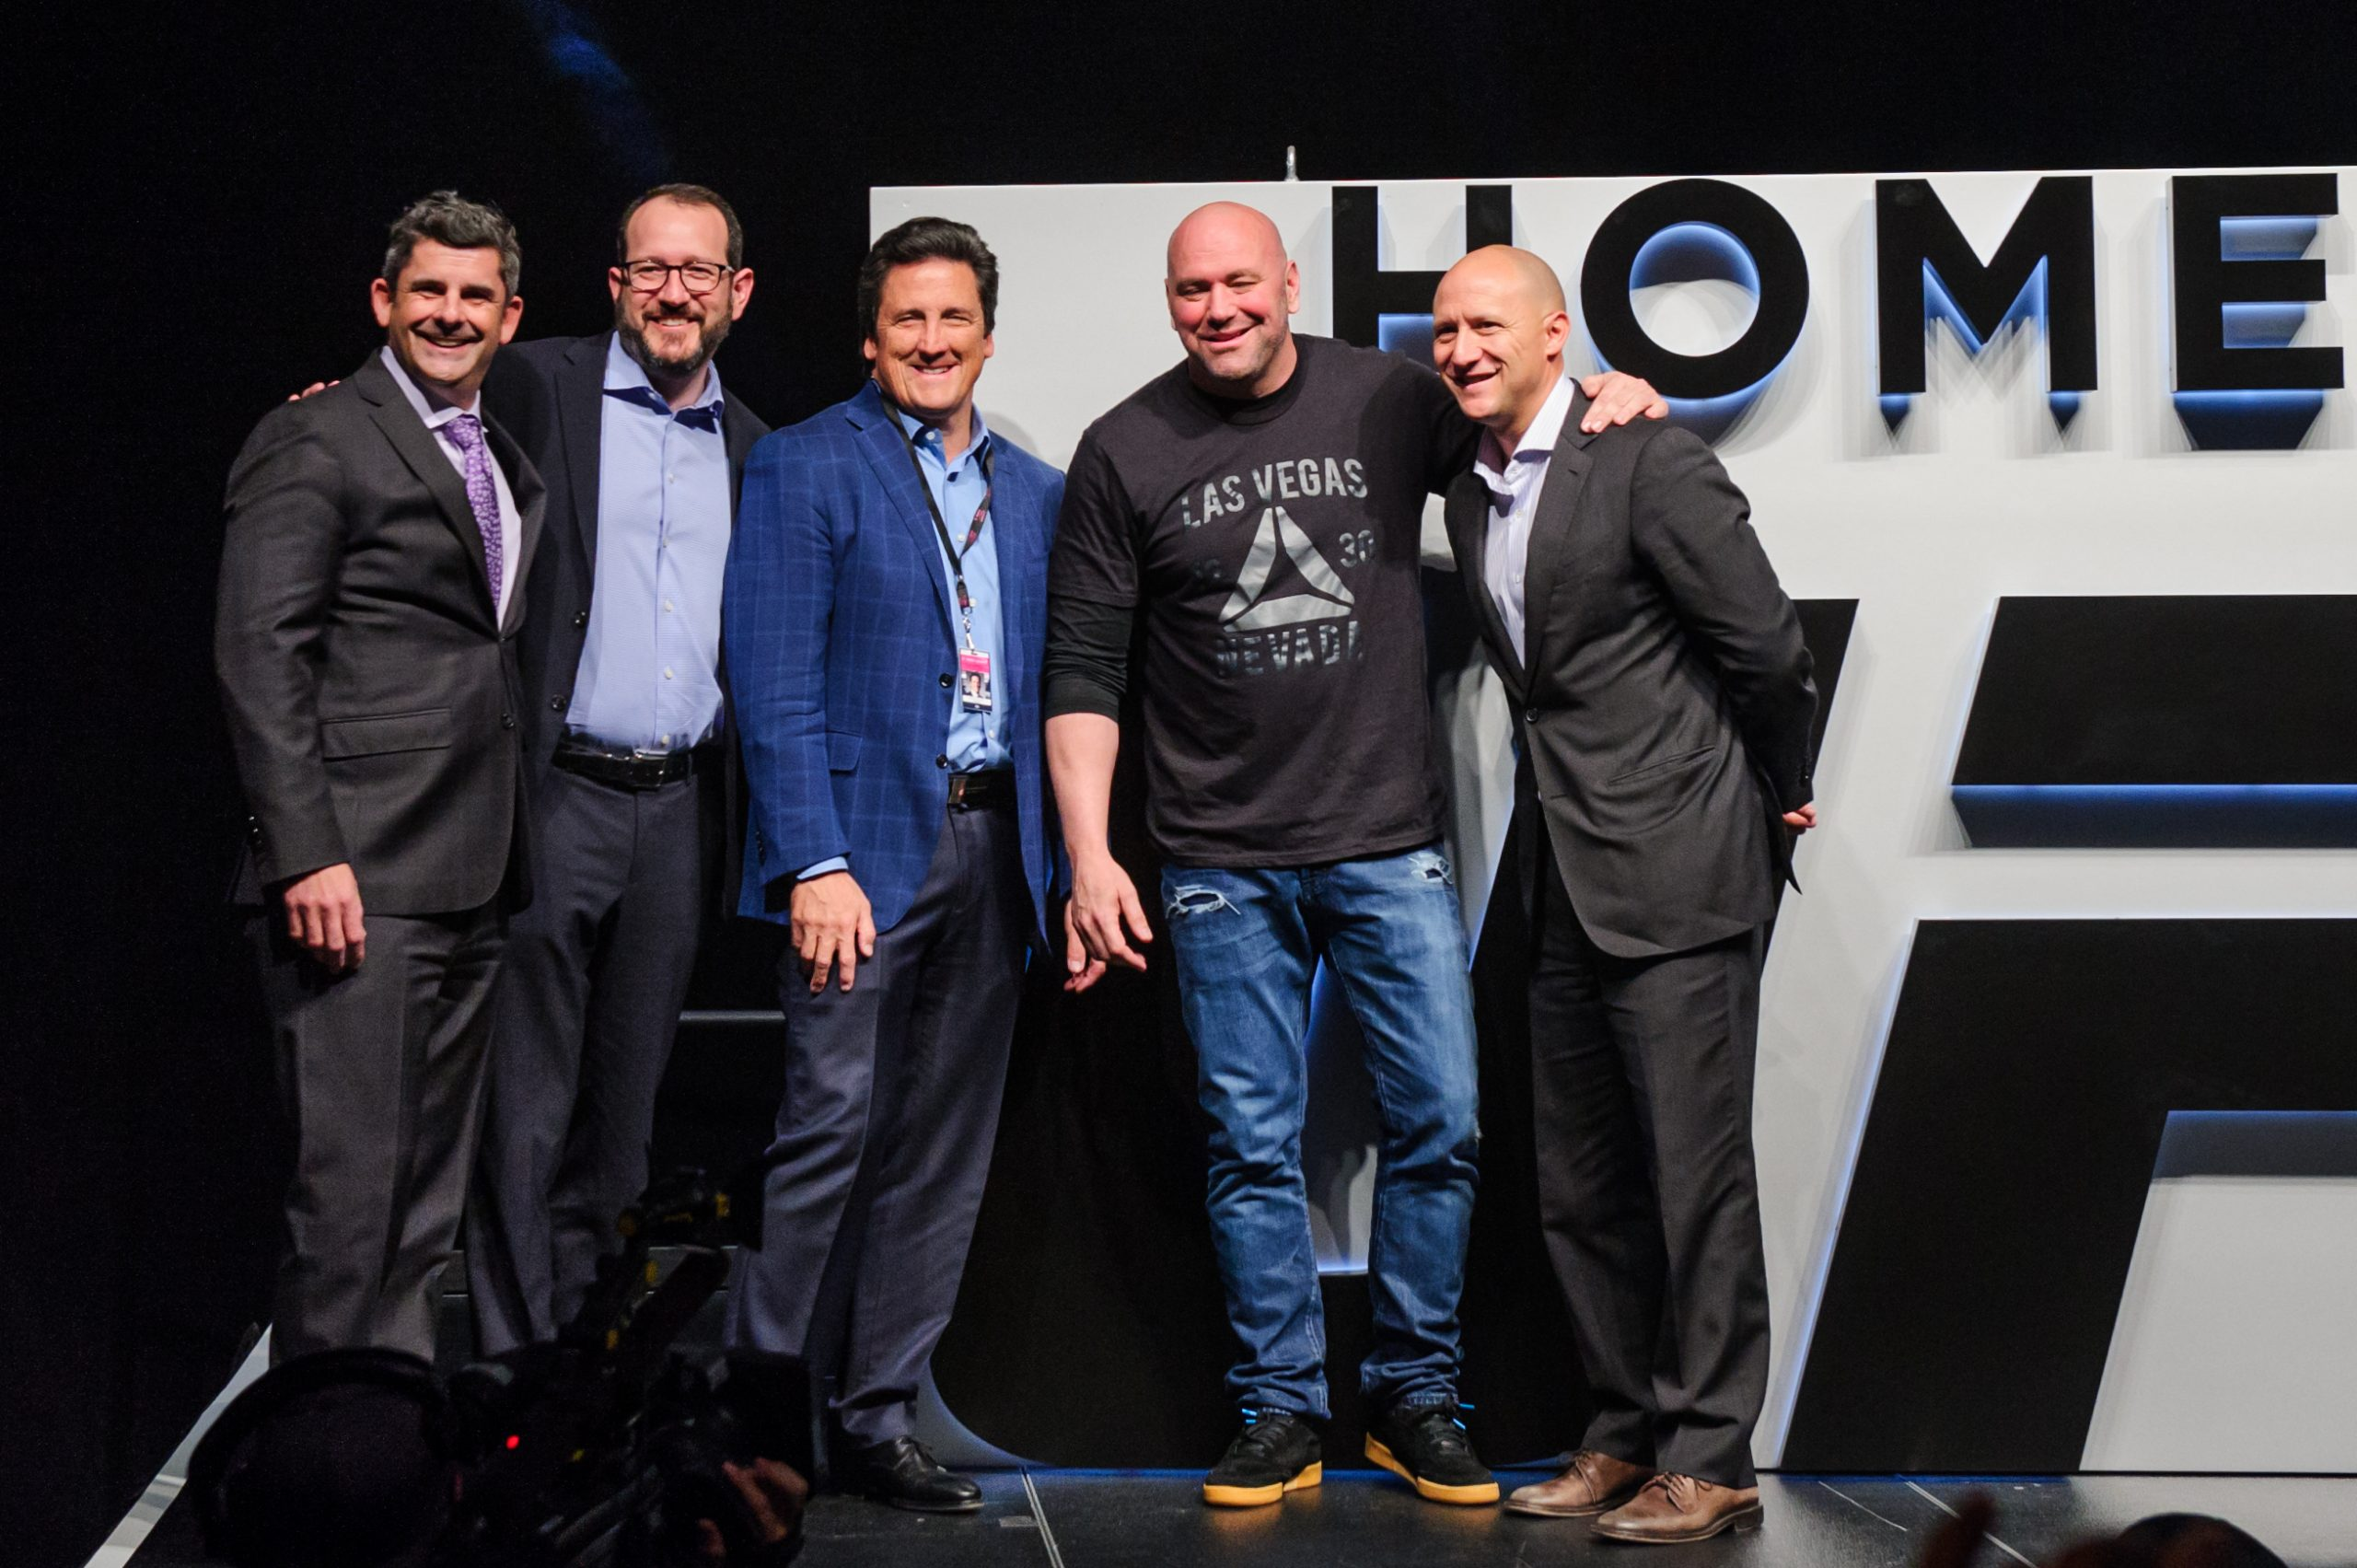 Rick Arpin, Sr. Vice President and Corporate Controller, MGM Resorts, International,  Dan Beckerman, President & CEO, Bill Hornbuckle, President of MGM Resorts International, AEG, Dana White, President of the Ultimate Fighting Championship (UFC), and Todd Goldstein Chief Revenue Officer, AEG